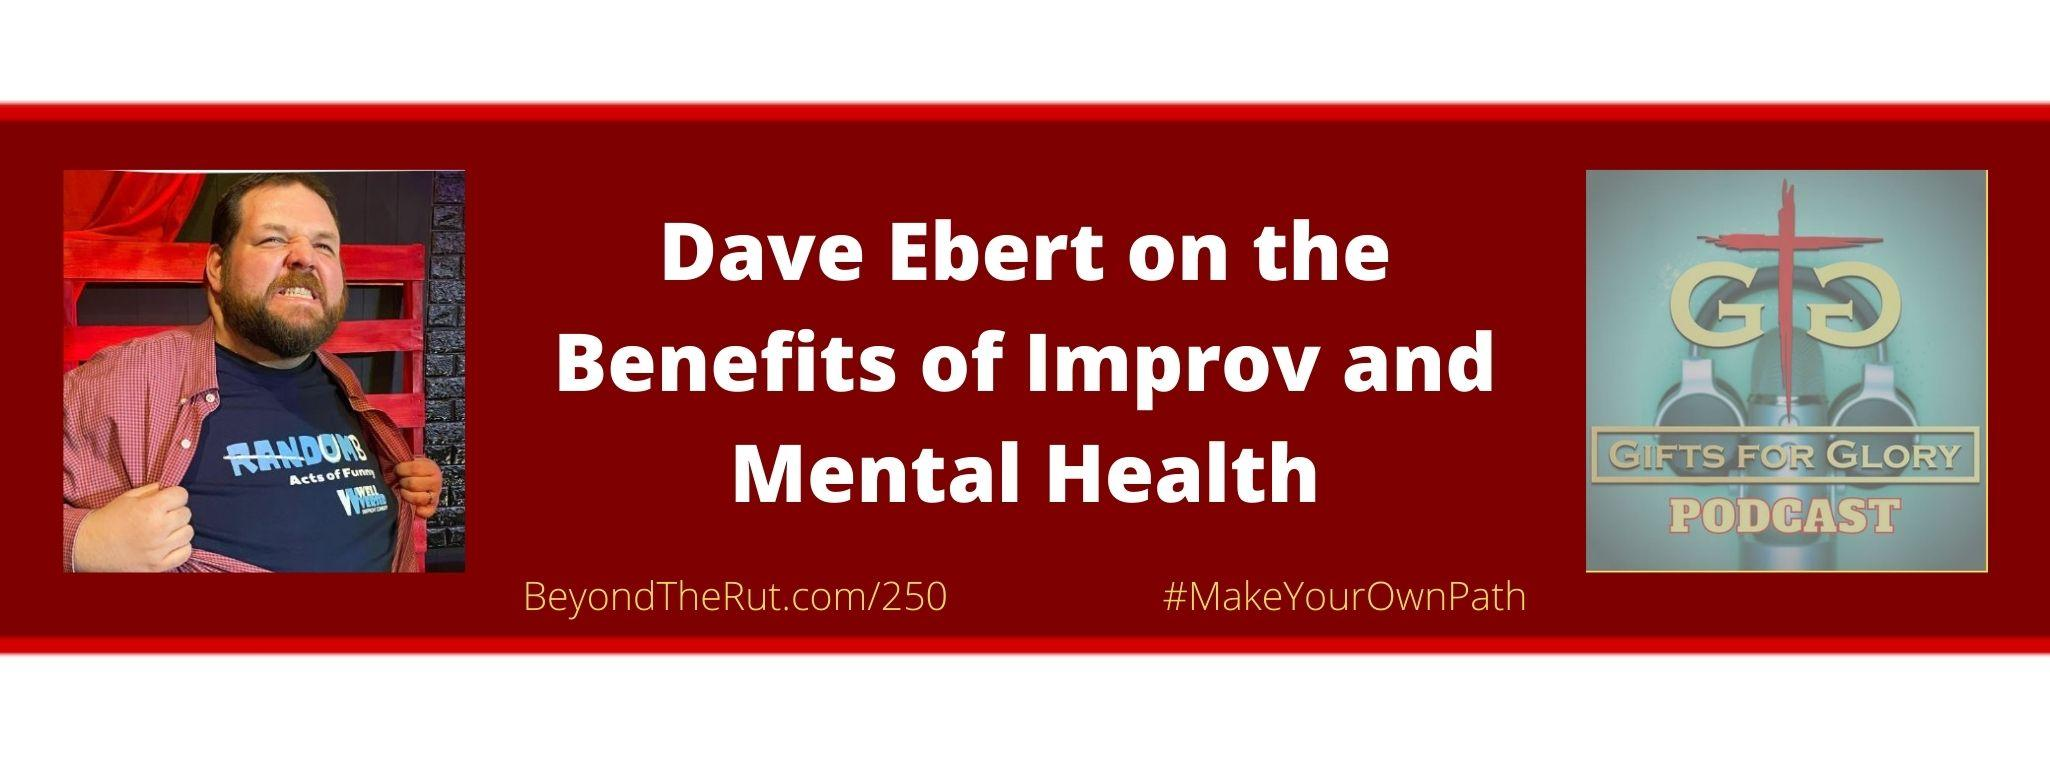 benefits of improv